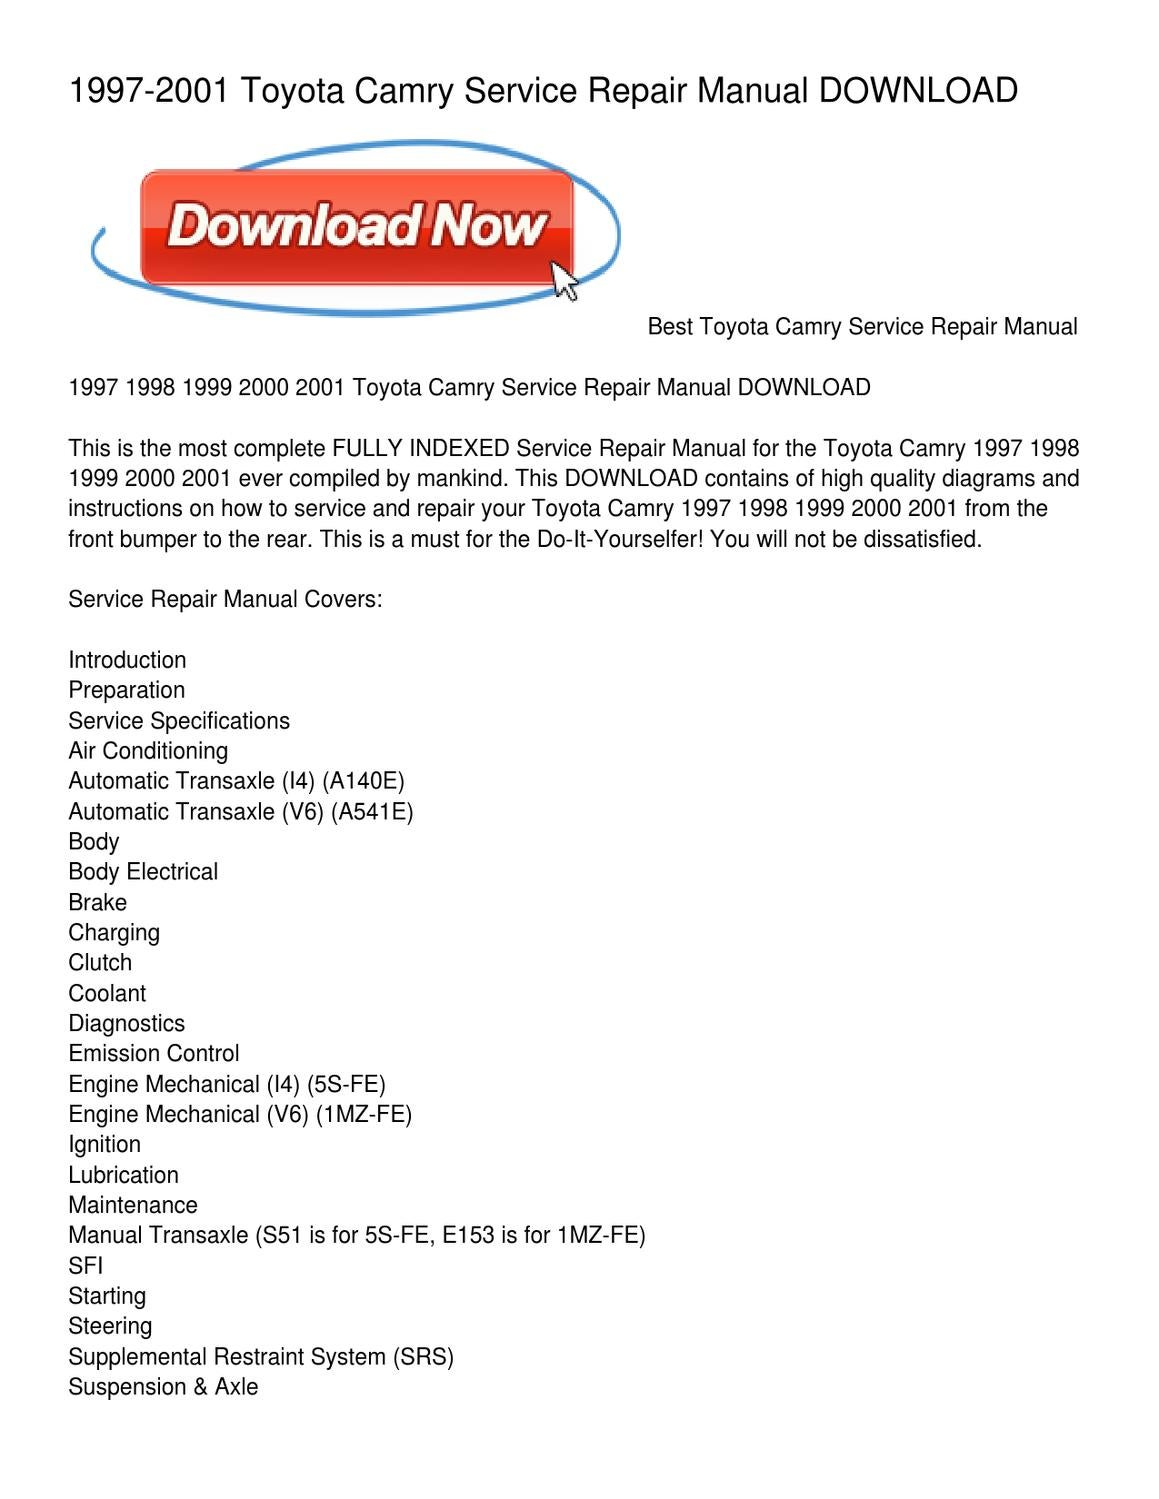 1997-2001 Toyota Camry Service Repair Manual DOWNLOAD by Jacquline Drake -  issuu